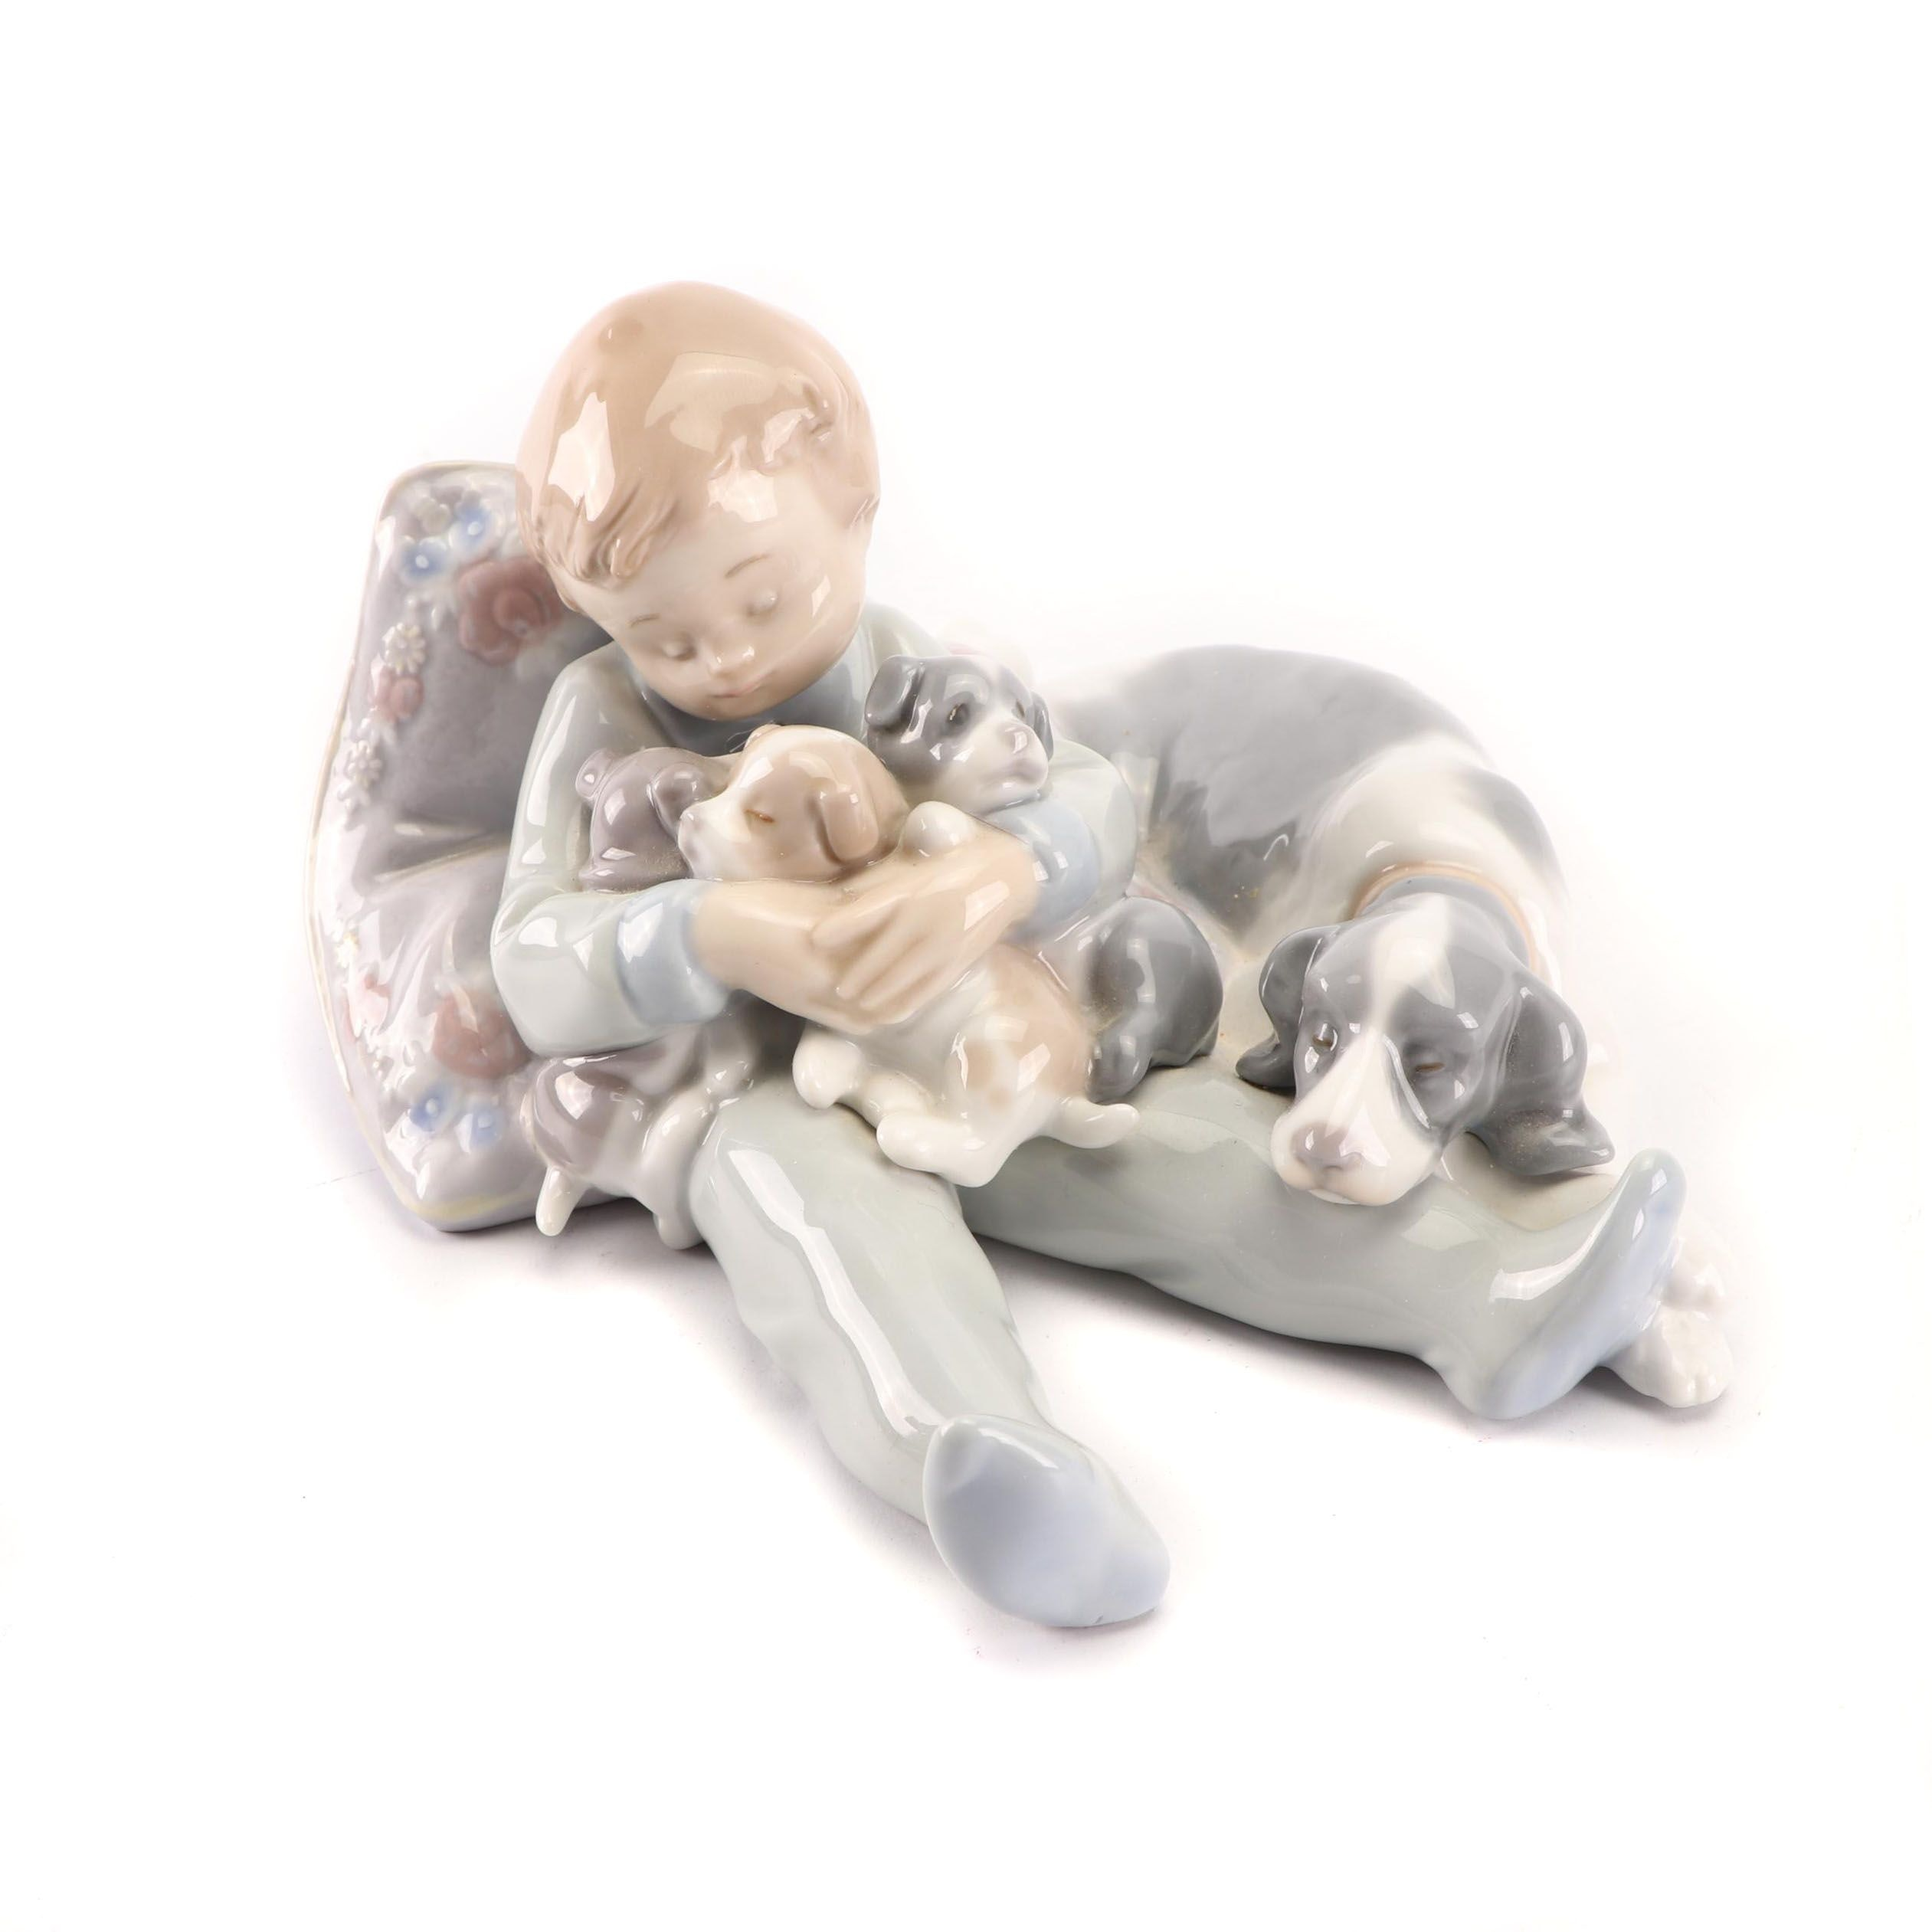 "Lladro ""Sleeping Child with Puppies and Mama"" Porcelain Figurine, 1990s"